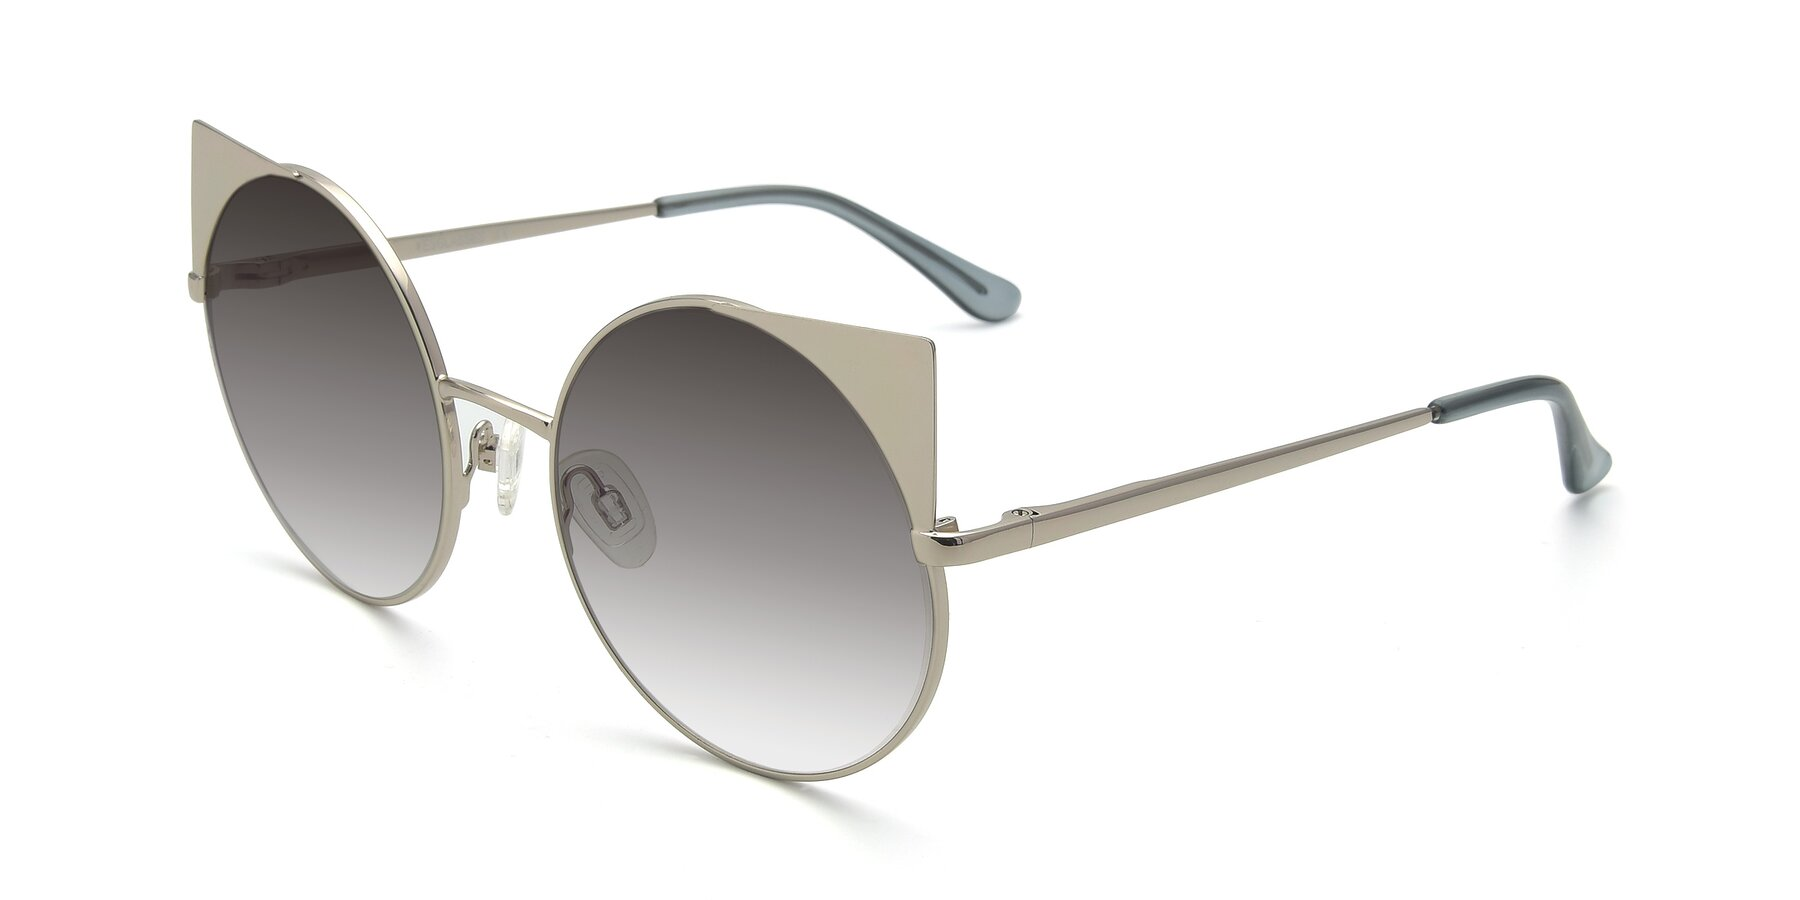 Angle of SSR1955 in Silver with Gray Gradient Lenses